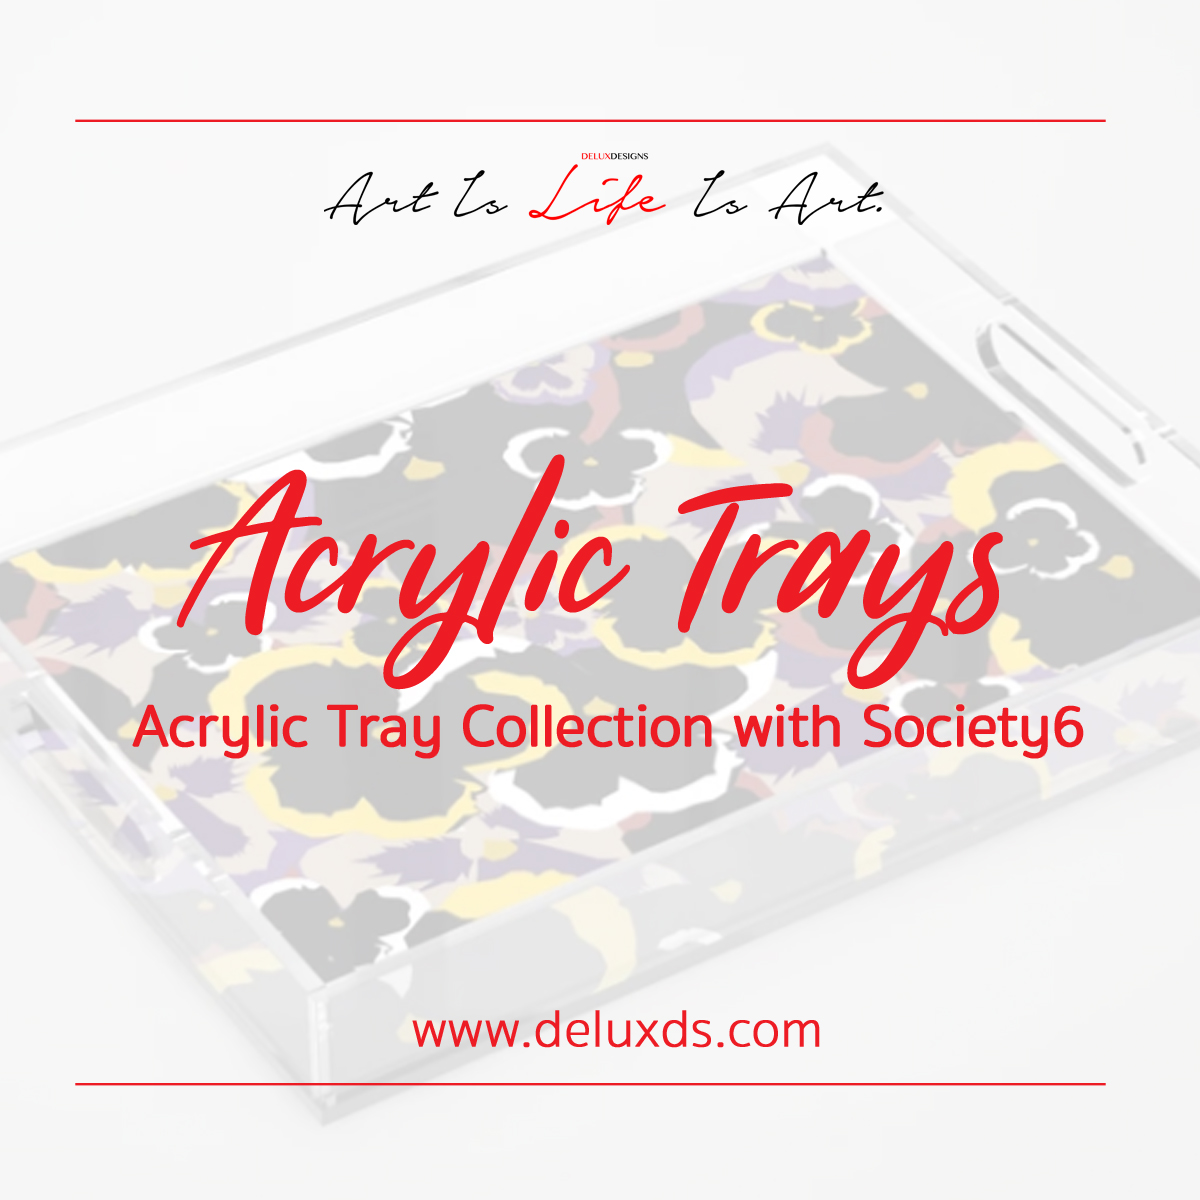 Acrylic Tray Collection with Society6